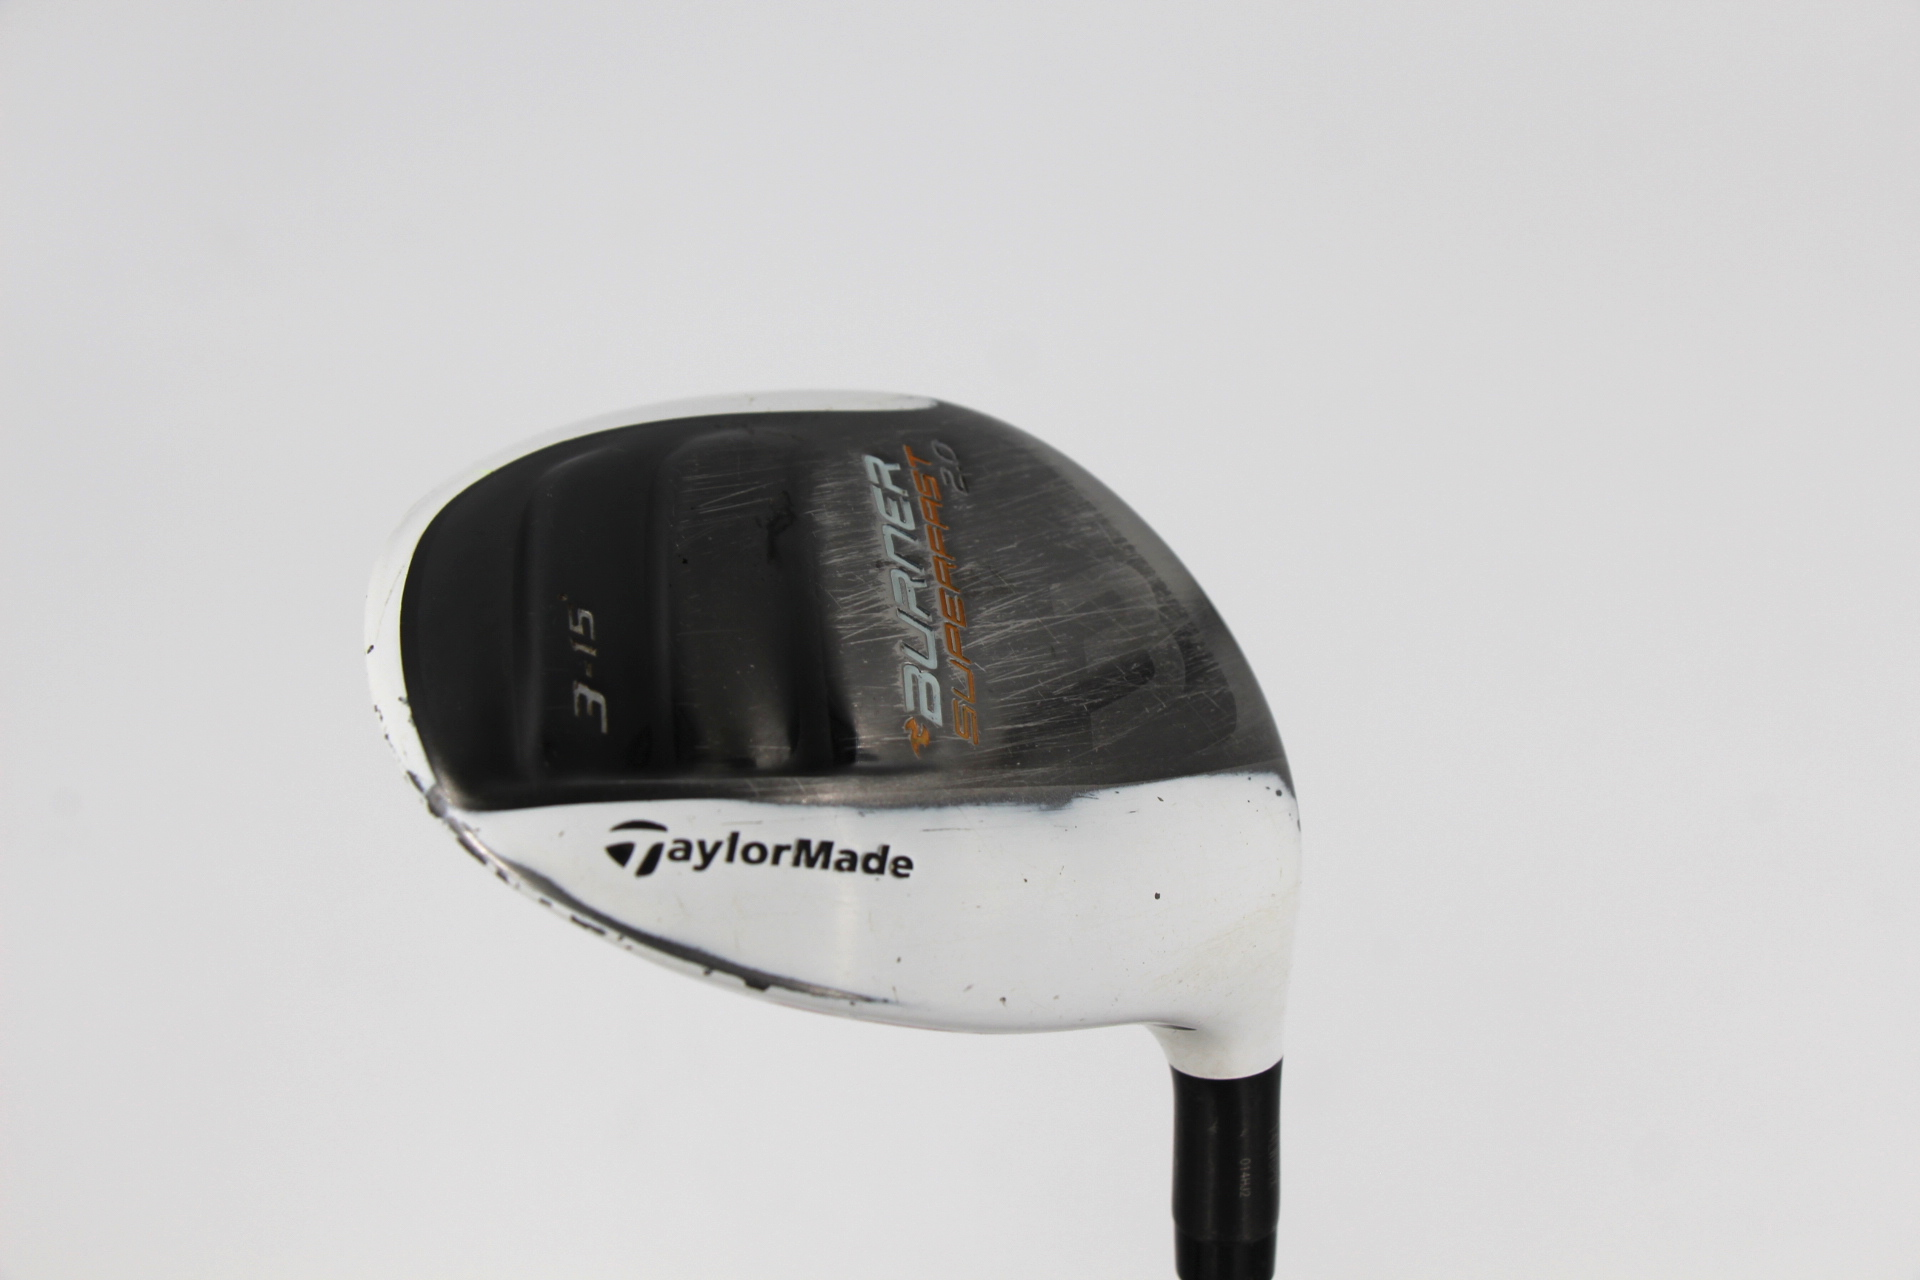 TaylorMade Burner Superfast 2.0 3-Wood